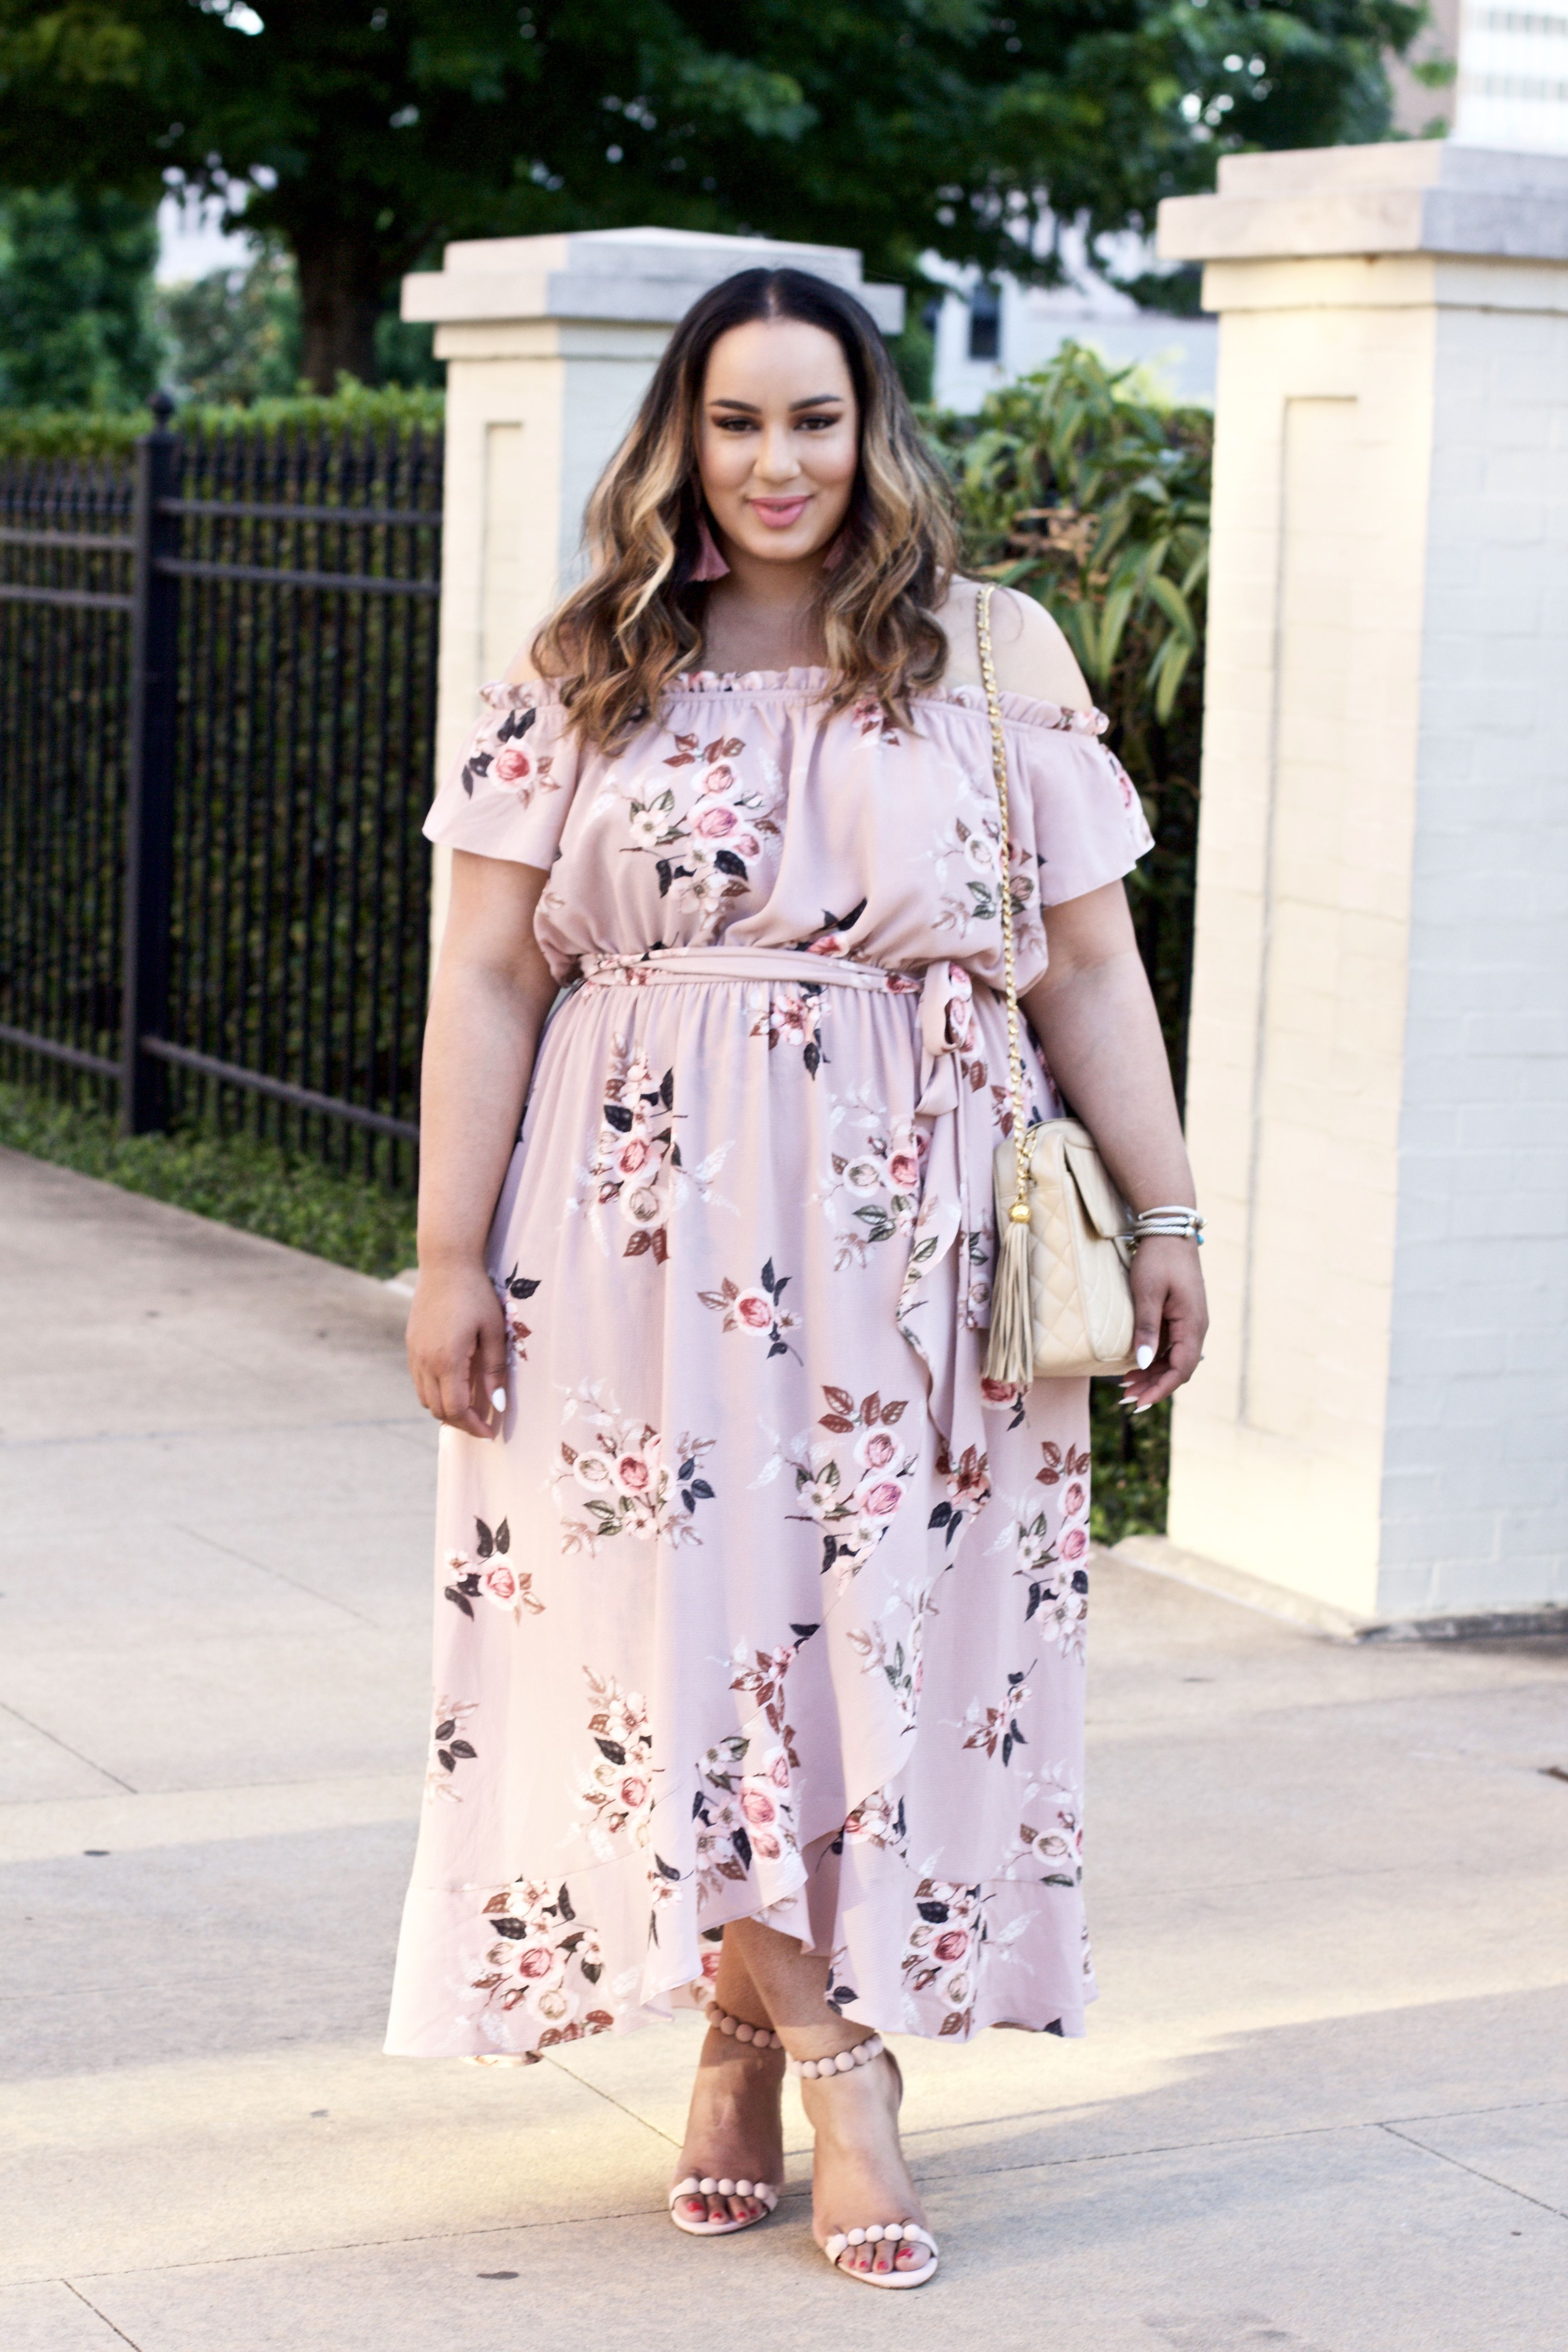 Spring Summer Dresses With Macy S X City Chic Beauticurve Plus Size Fashion Maxi Dress Plus Size Outfits [ 5184 x 3456 Pixel ]